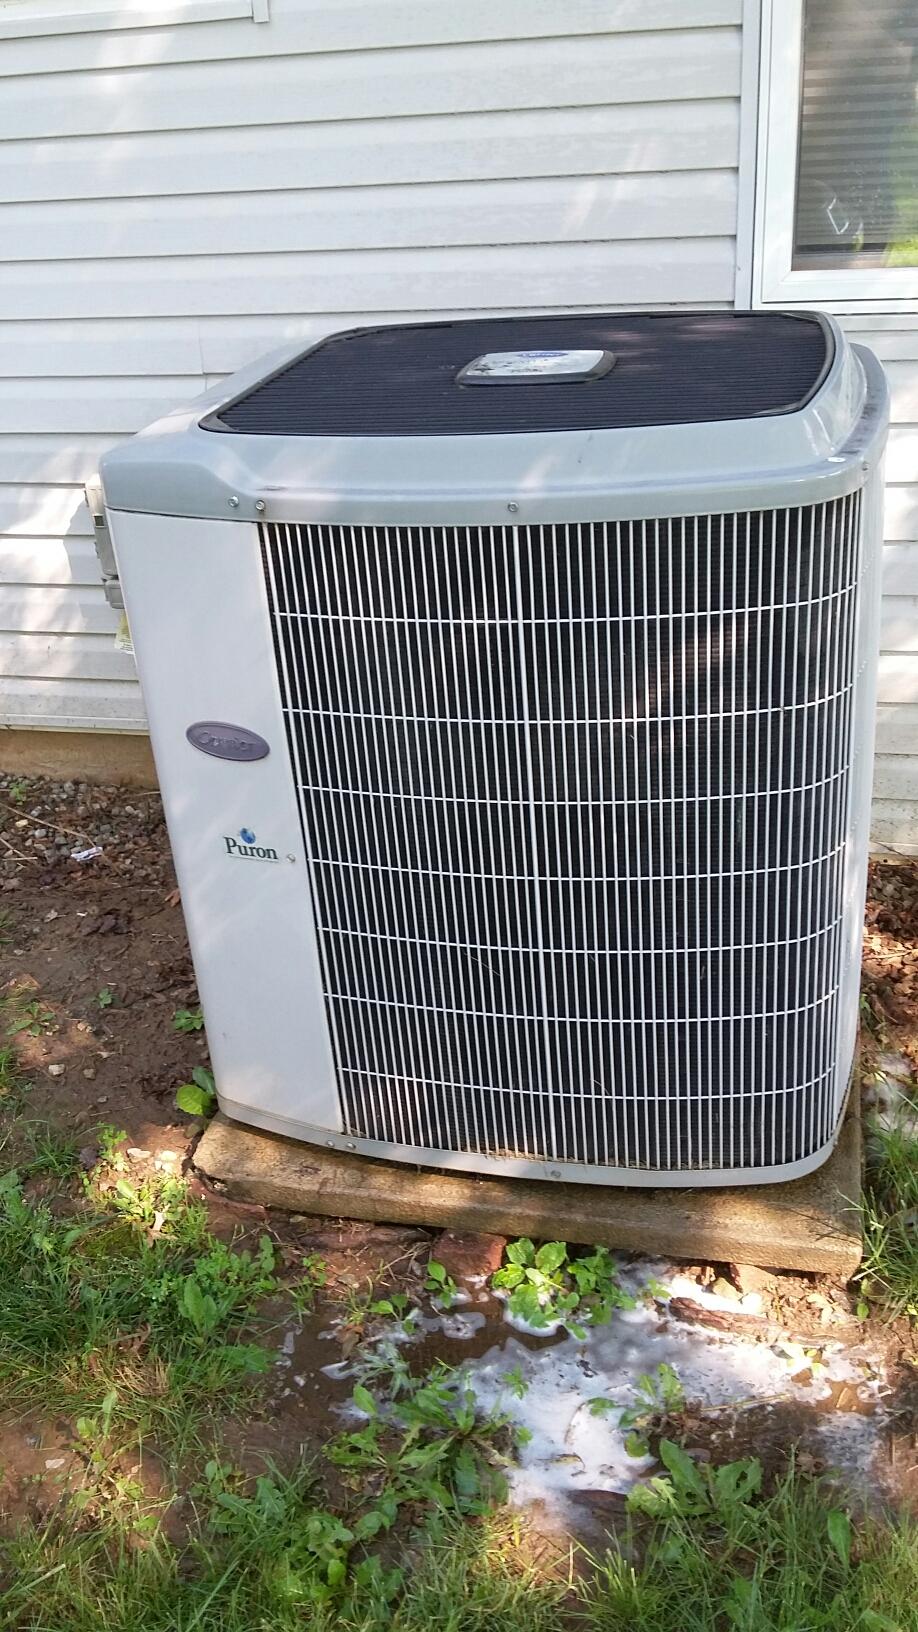 Bensalem, PA - Performed an ac maintenance on a Carrier system